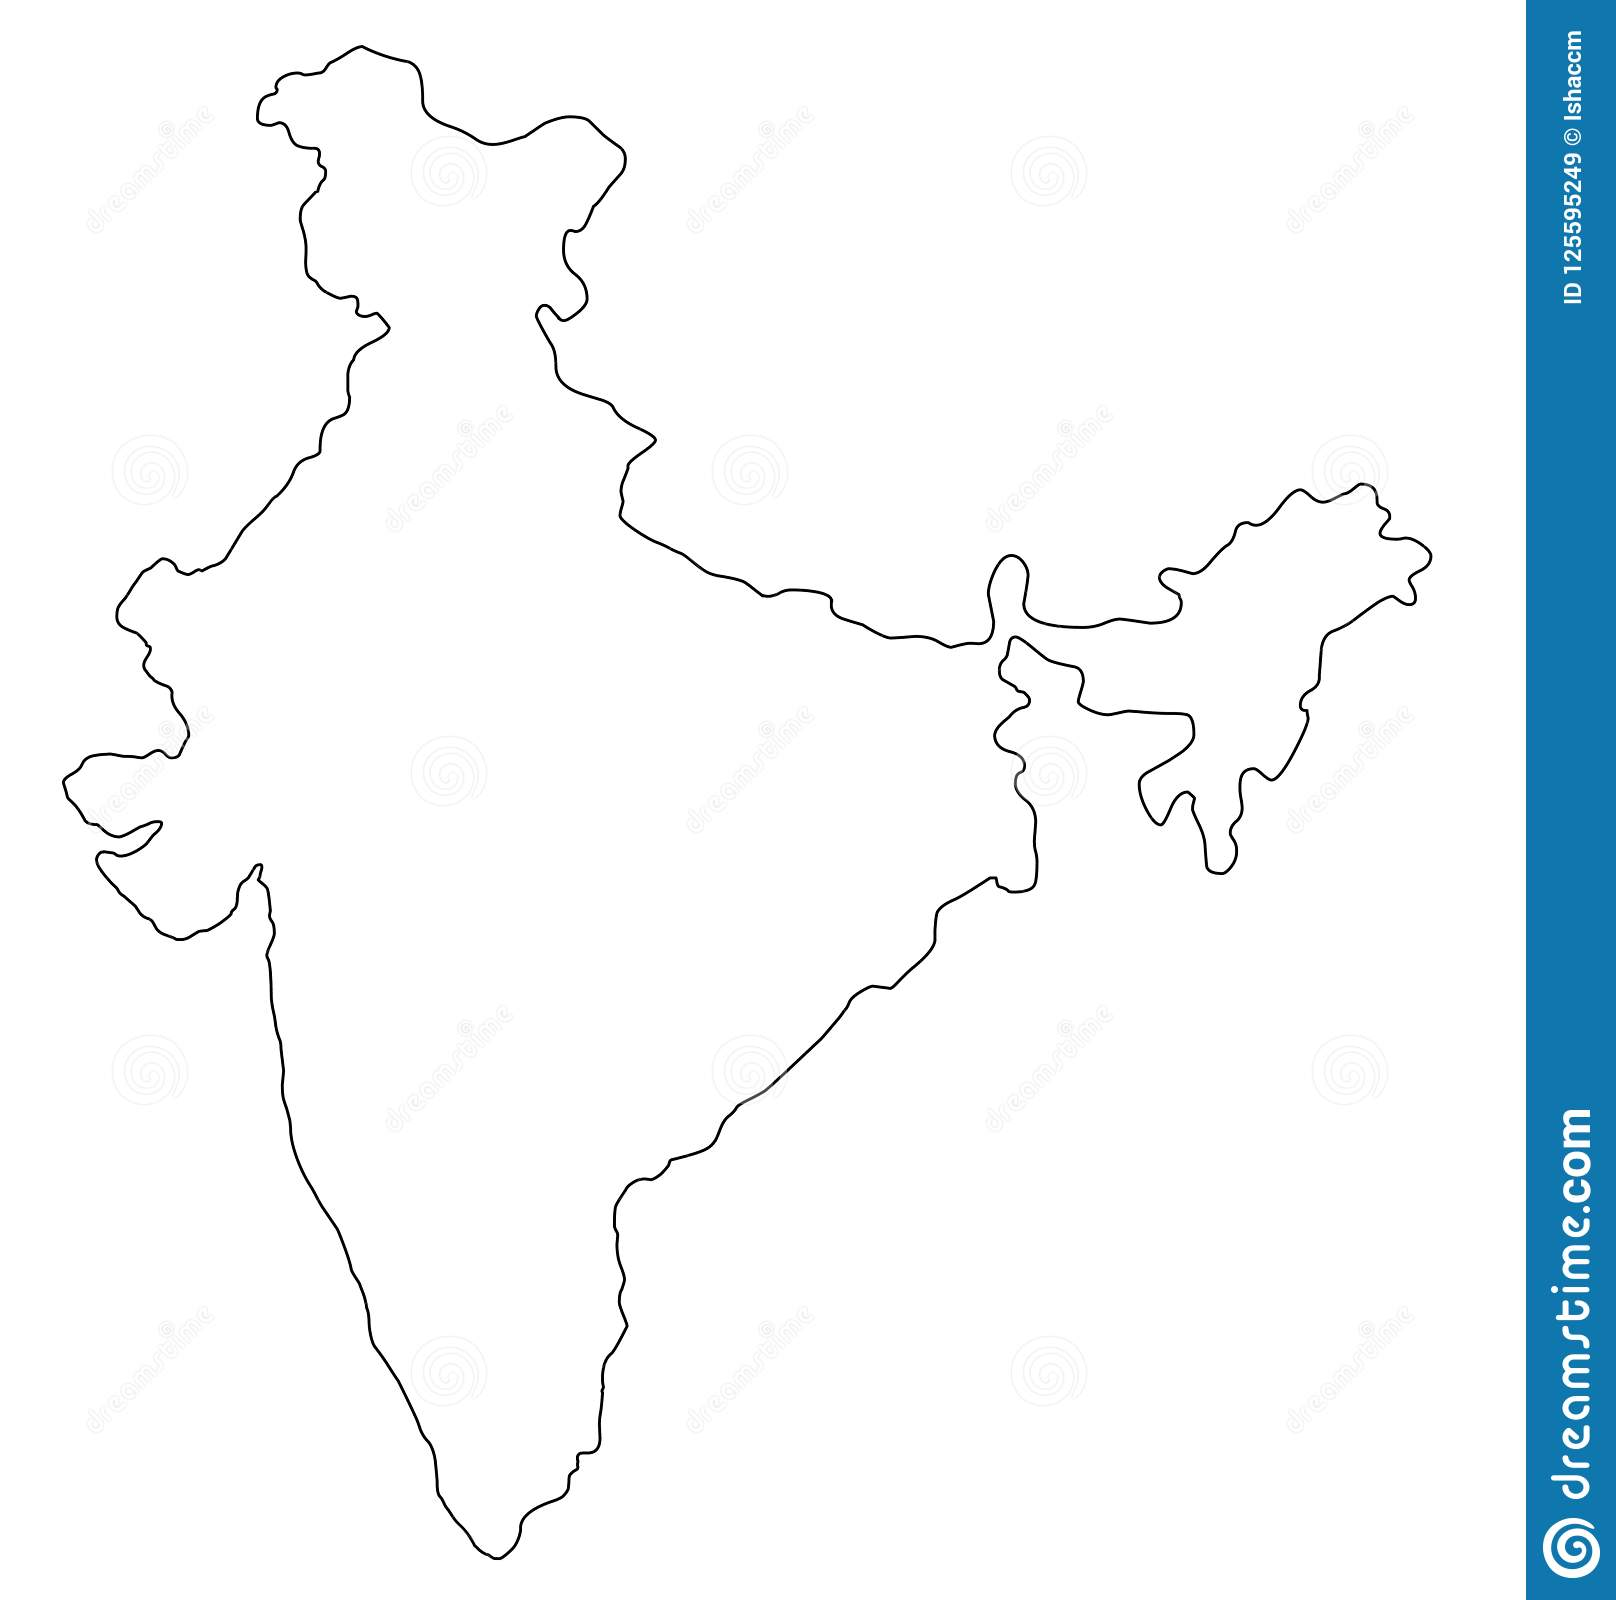 India Outline Map India Outline Map Vector Illustration Stock Vector   Illustration  India Outline Map